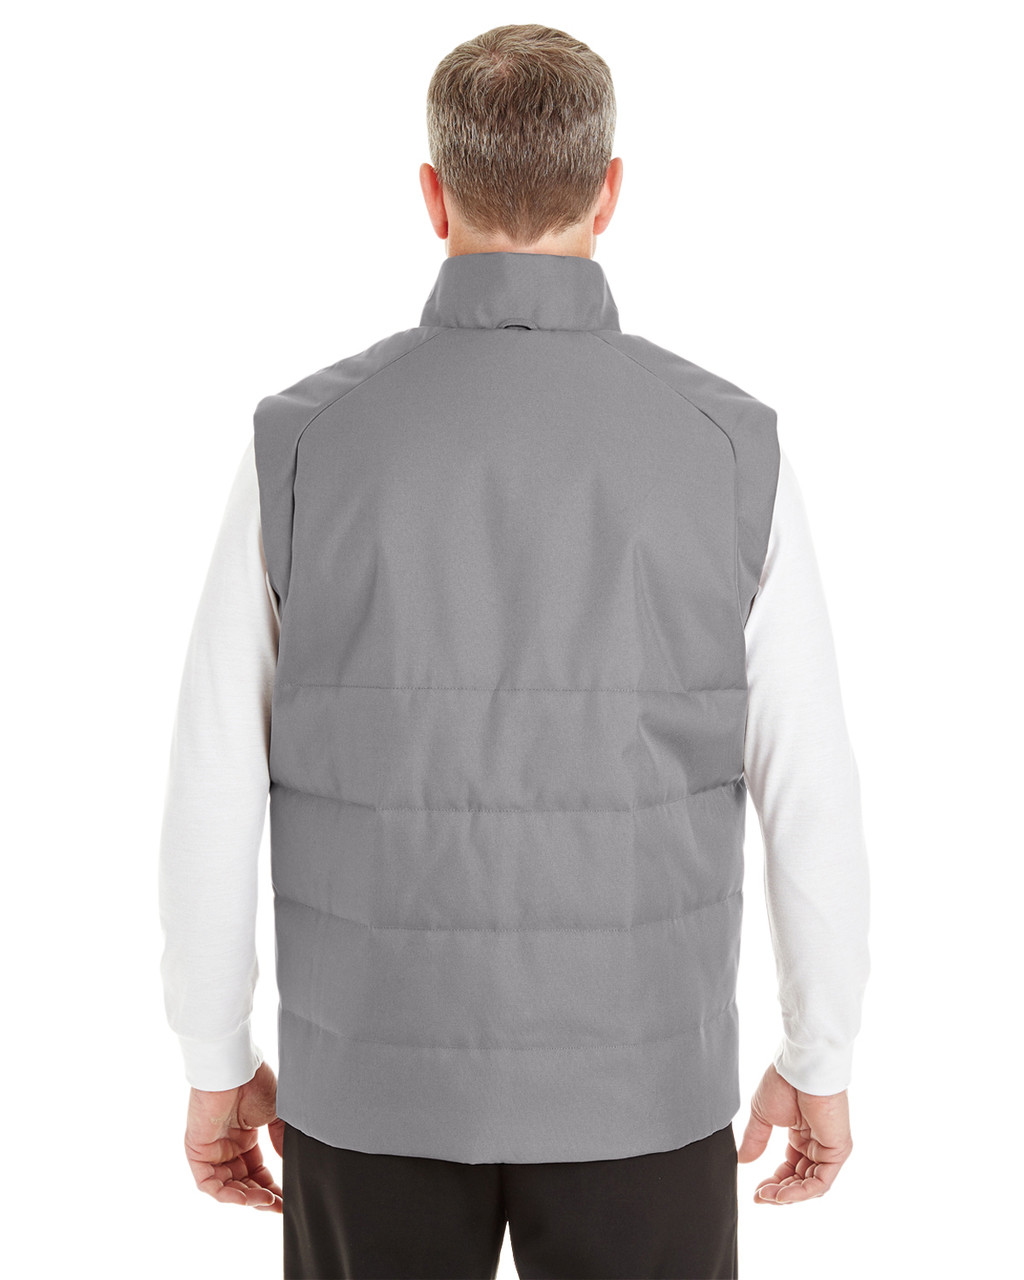 Graphite/Red - BACK - NE702 North End Men's Engage Interactive Insulated Vest | Blankclothing.ca